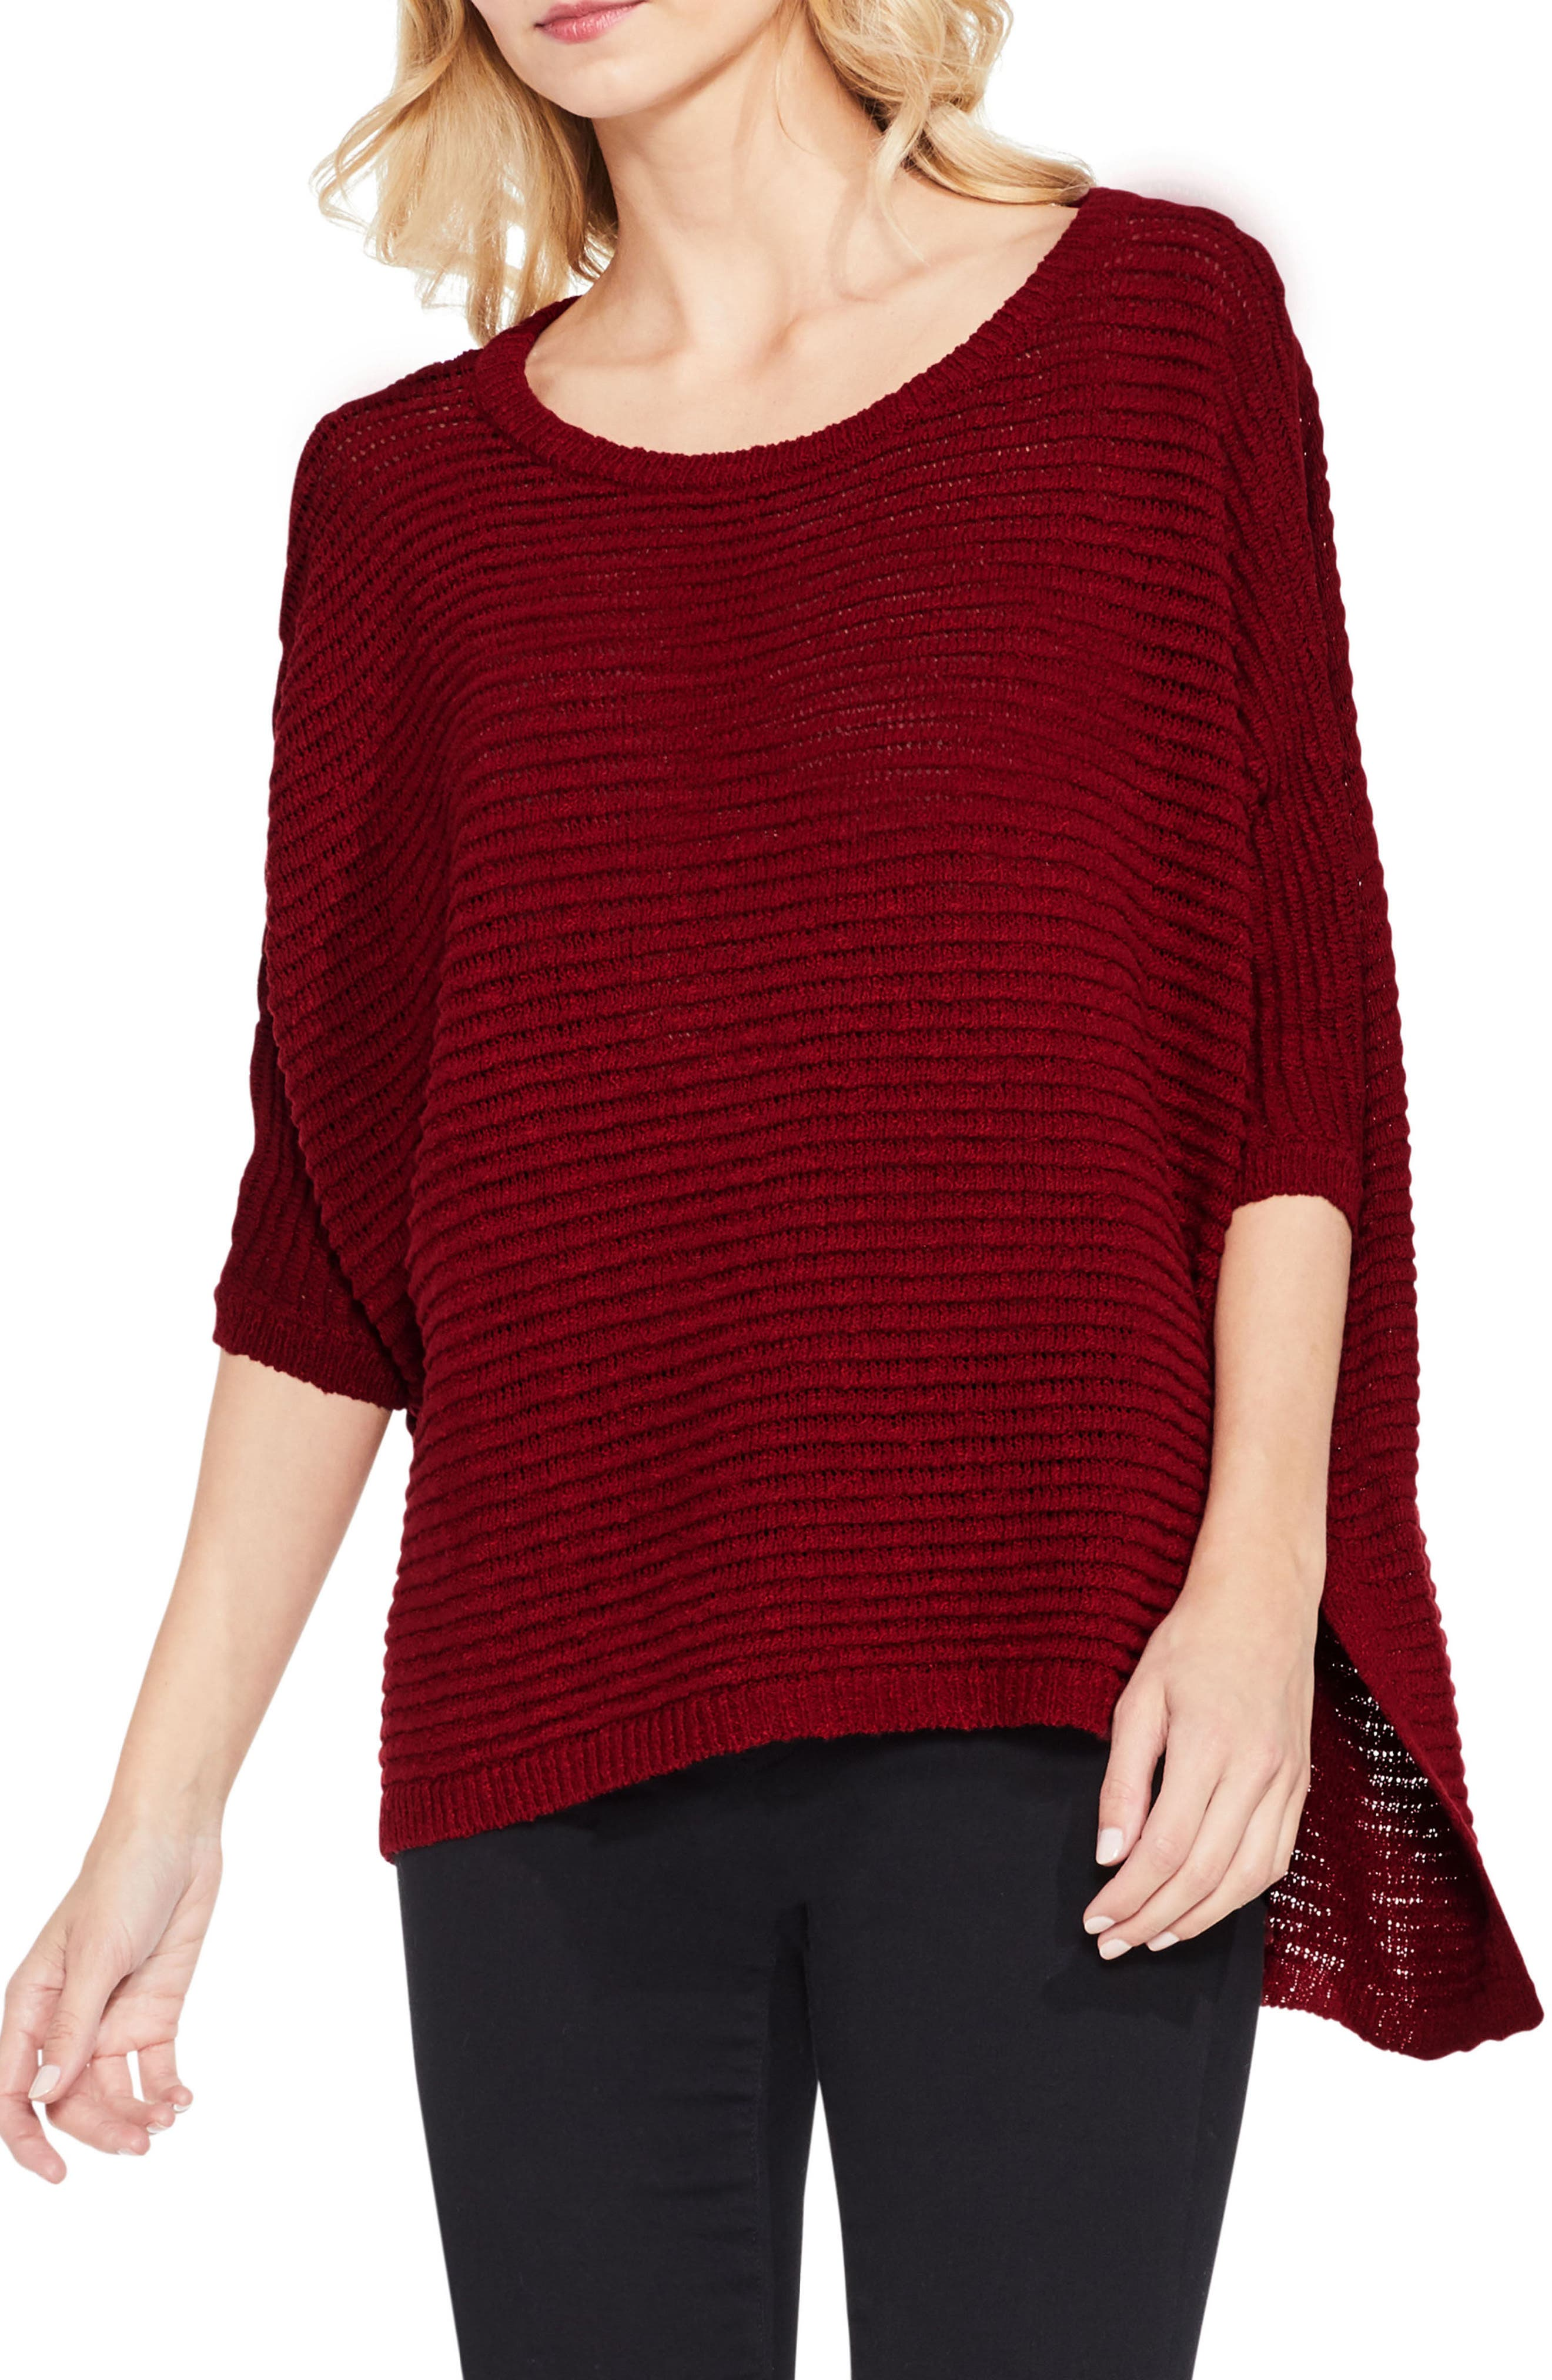 Two by Vince Camuto Crinkle Yarn Dolman Sleeve Top